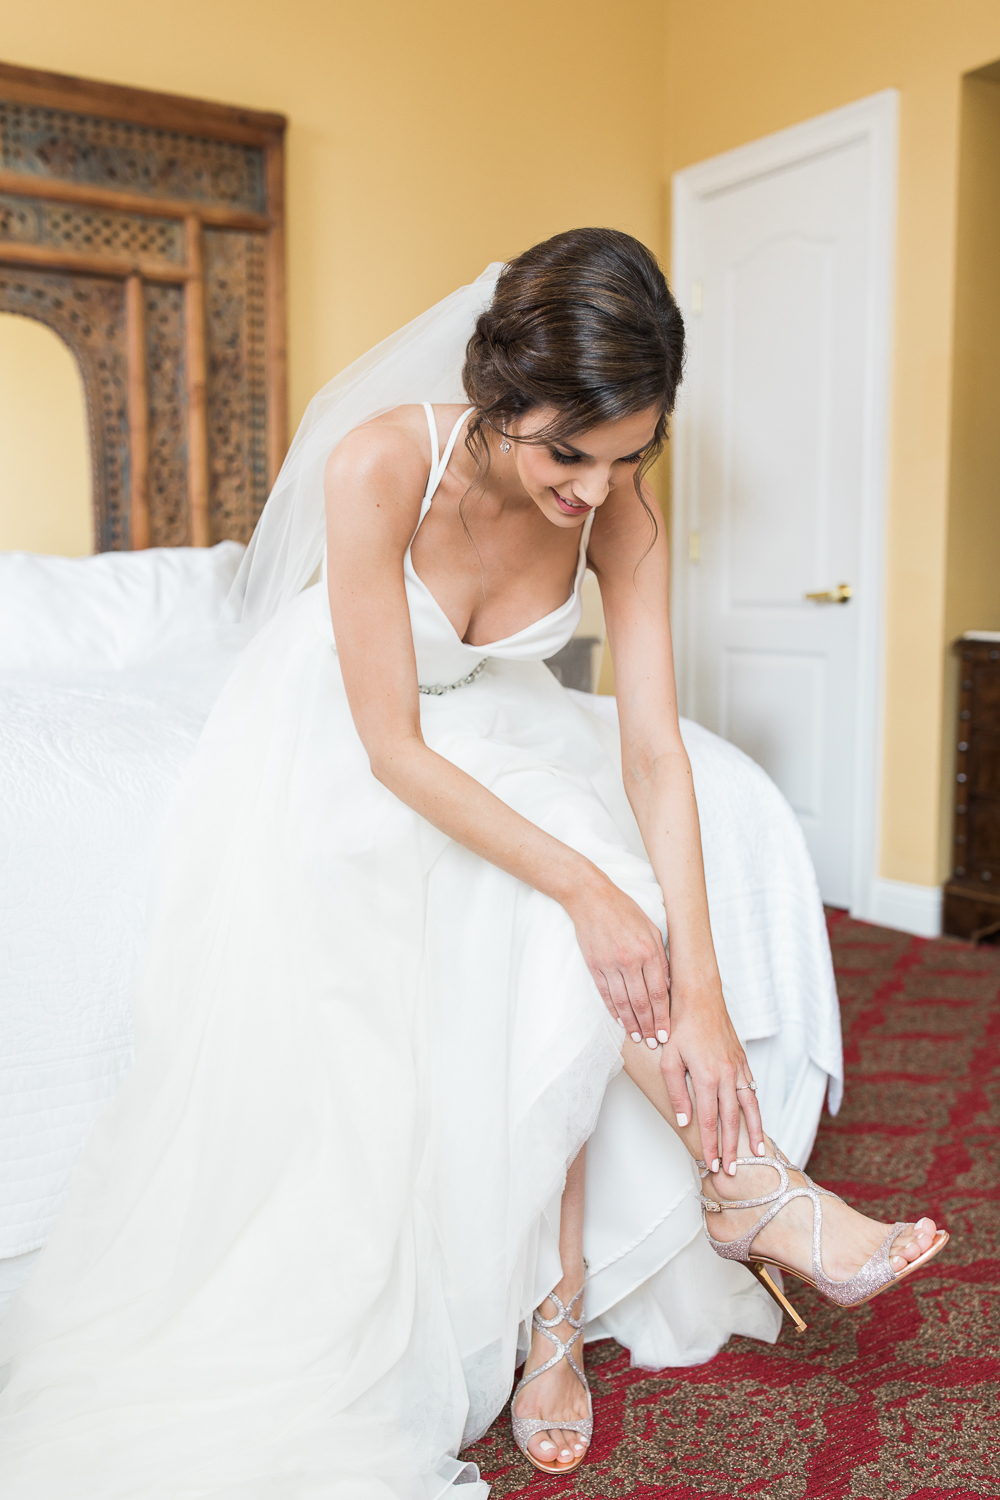 Bride getting her Jimmy Choo heels on